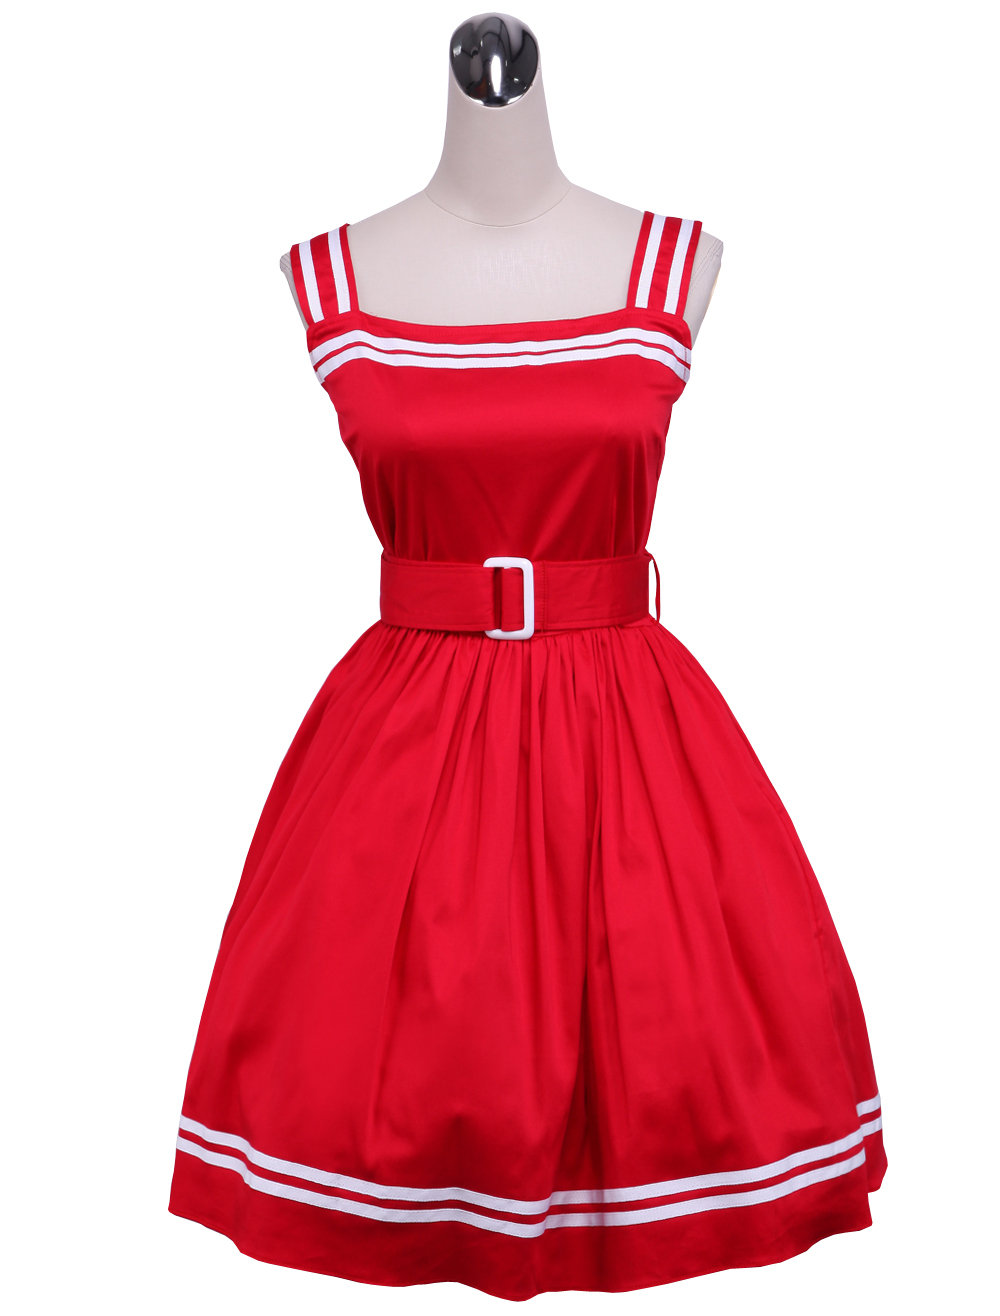 Primary image for ZeroMart Red Cotton Halter Sash Cute Sweet School Classic Lolita Dress